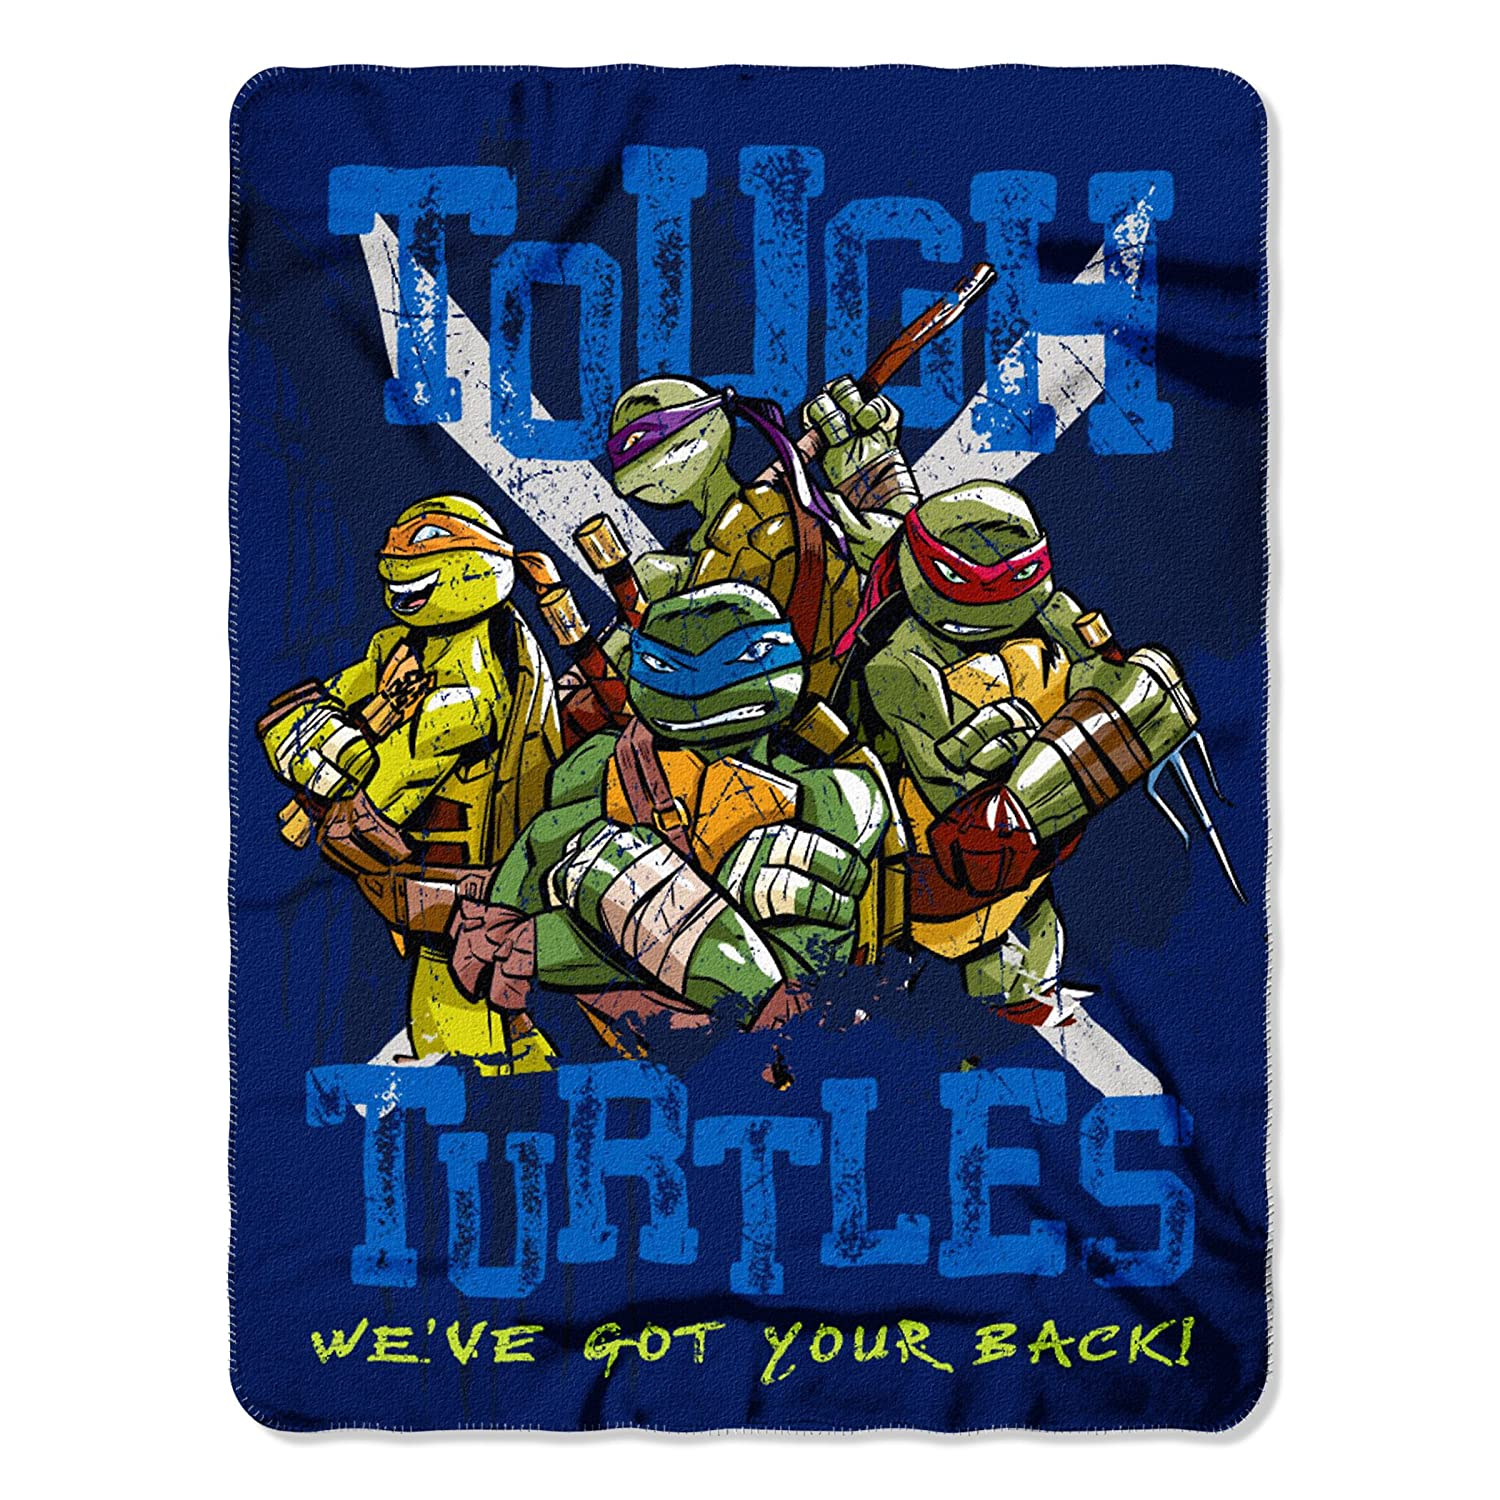 "Nickelodeon Teenage Mutant Ninja Turtles, Tough Turtles Blues Fleece Throw Blanket, 45"" x 60"", Multi Color"